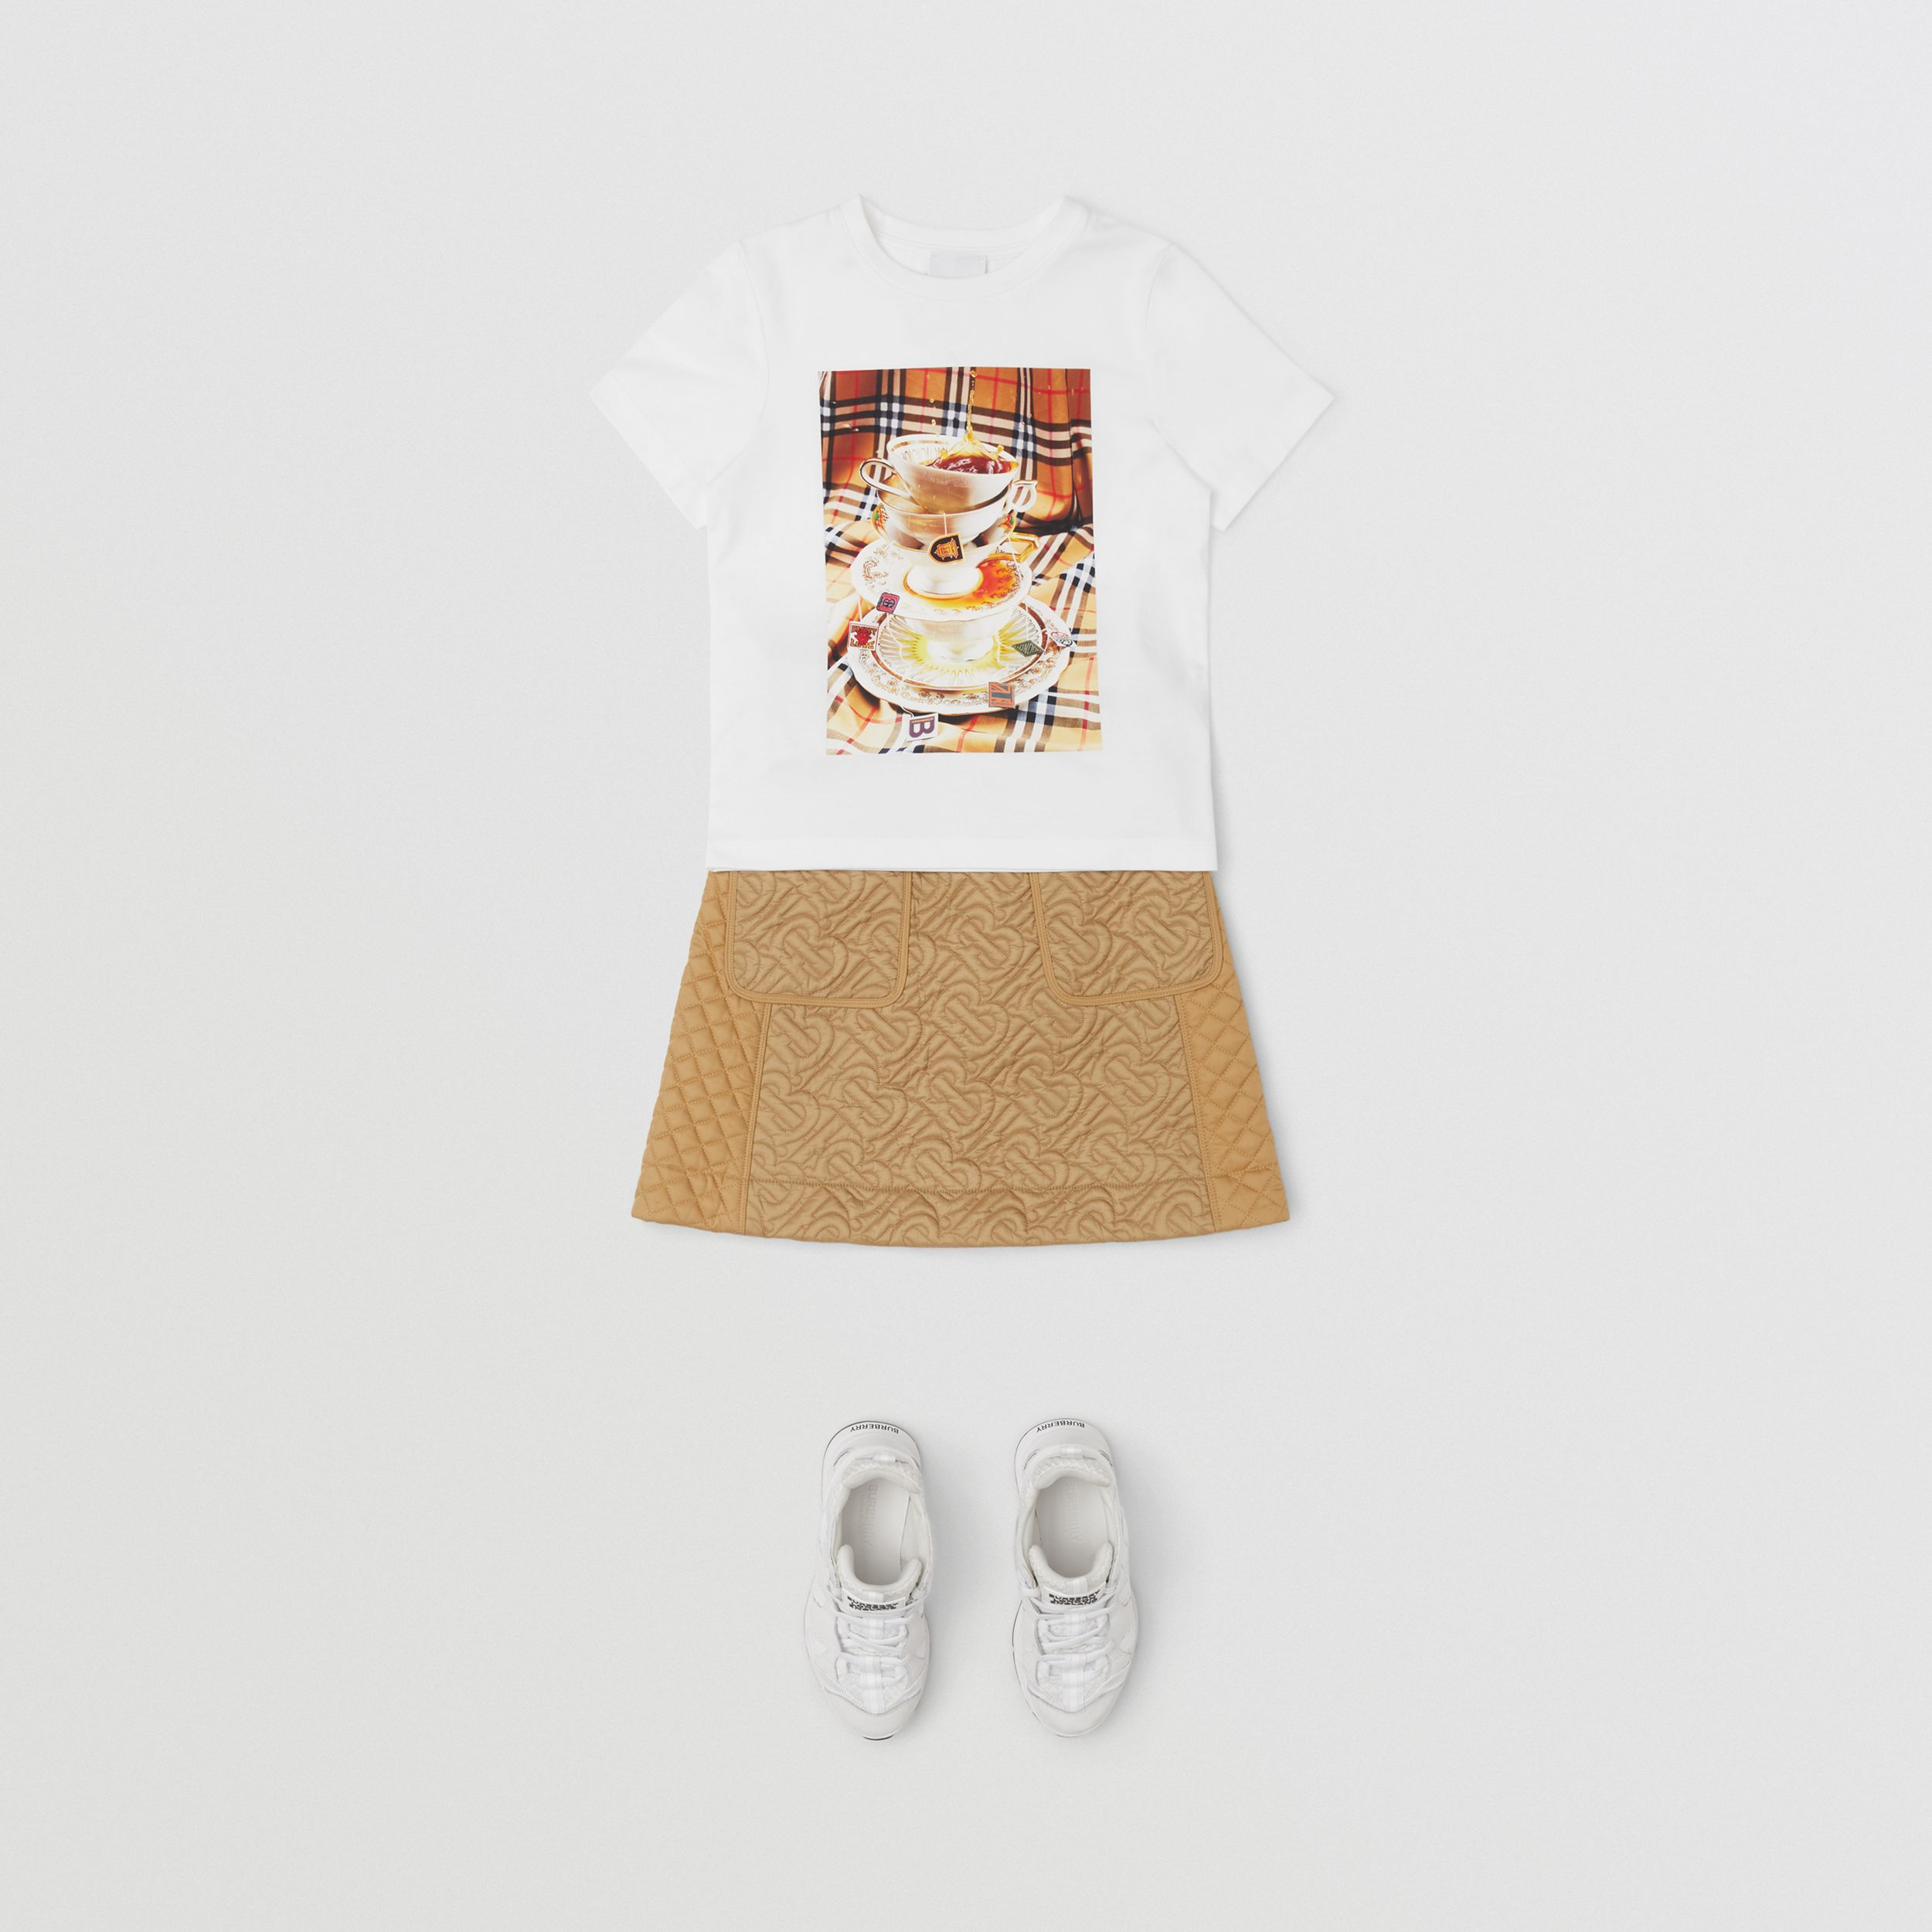 Teacup Print T-shirt in Multicolour | Burberry Singapore - 3